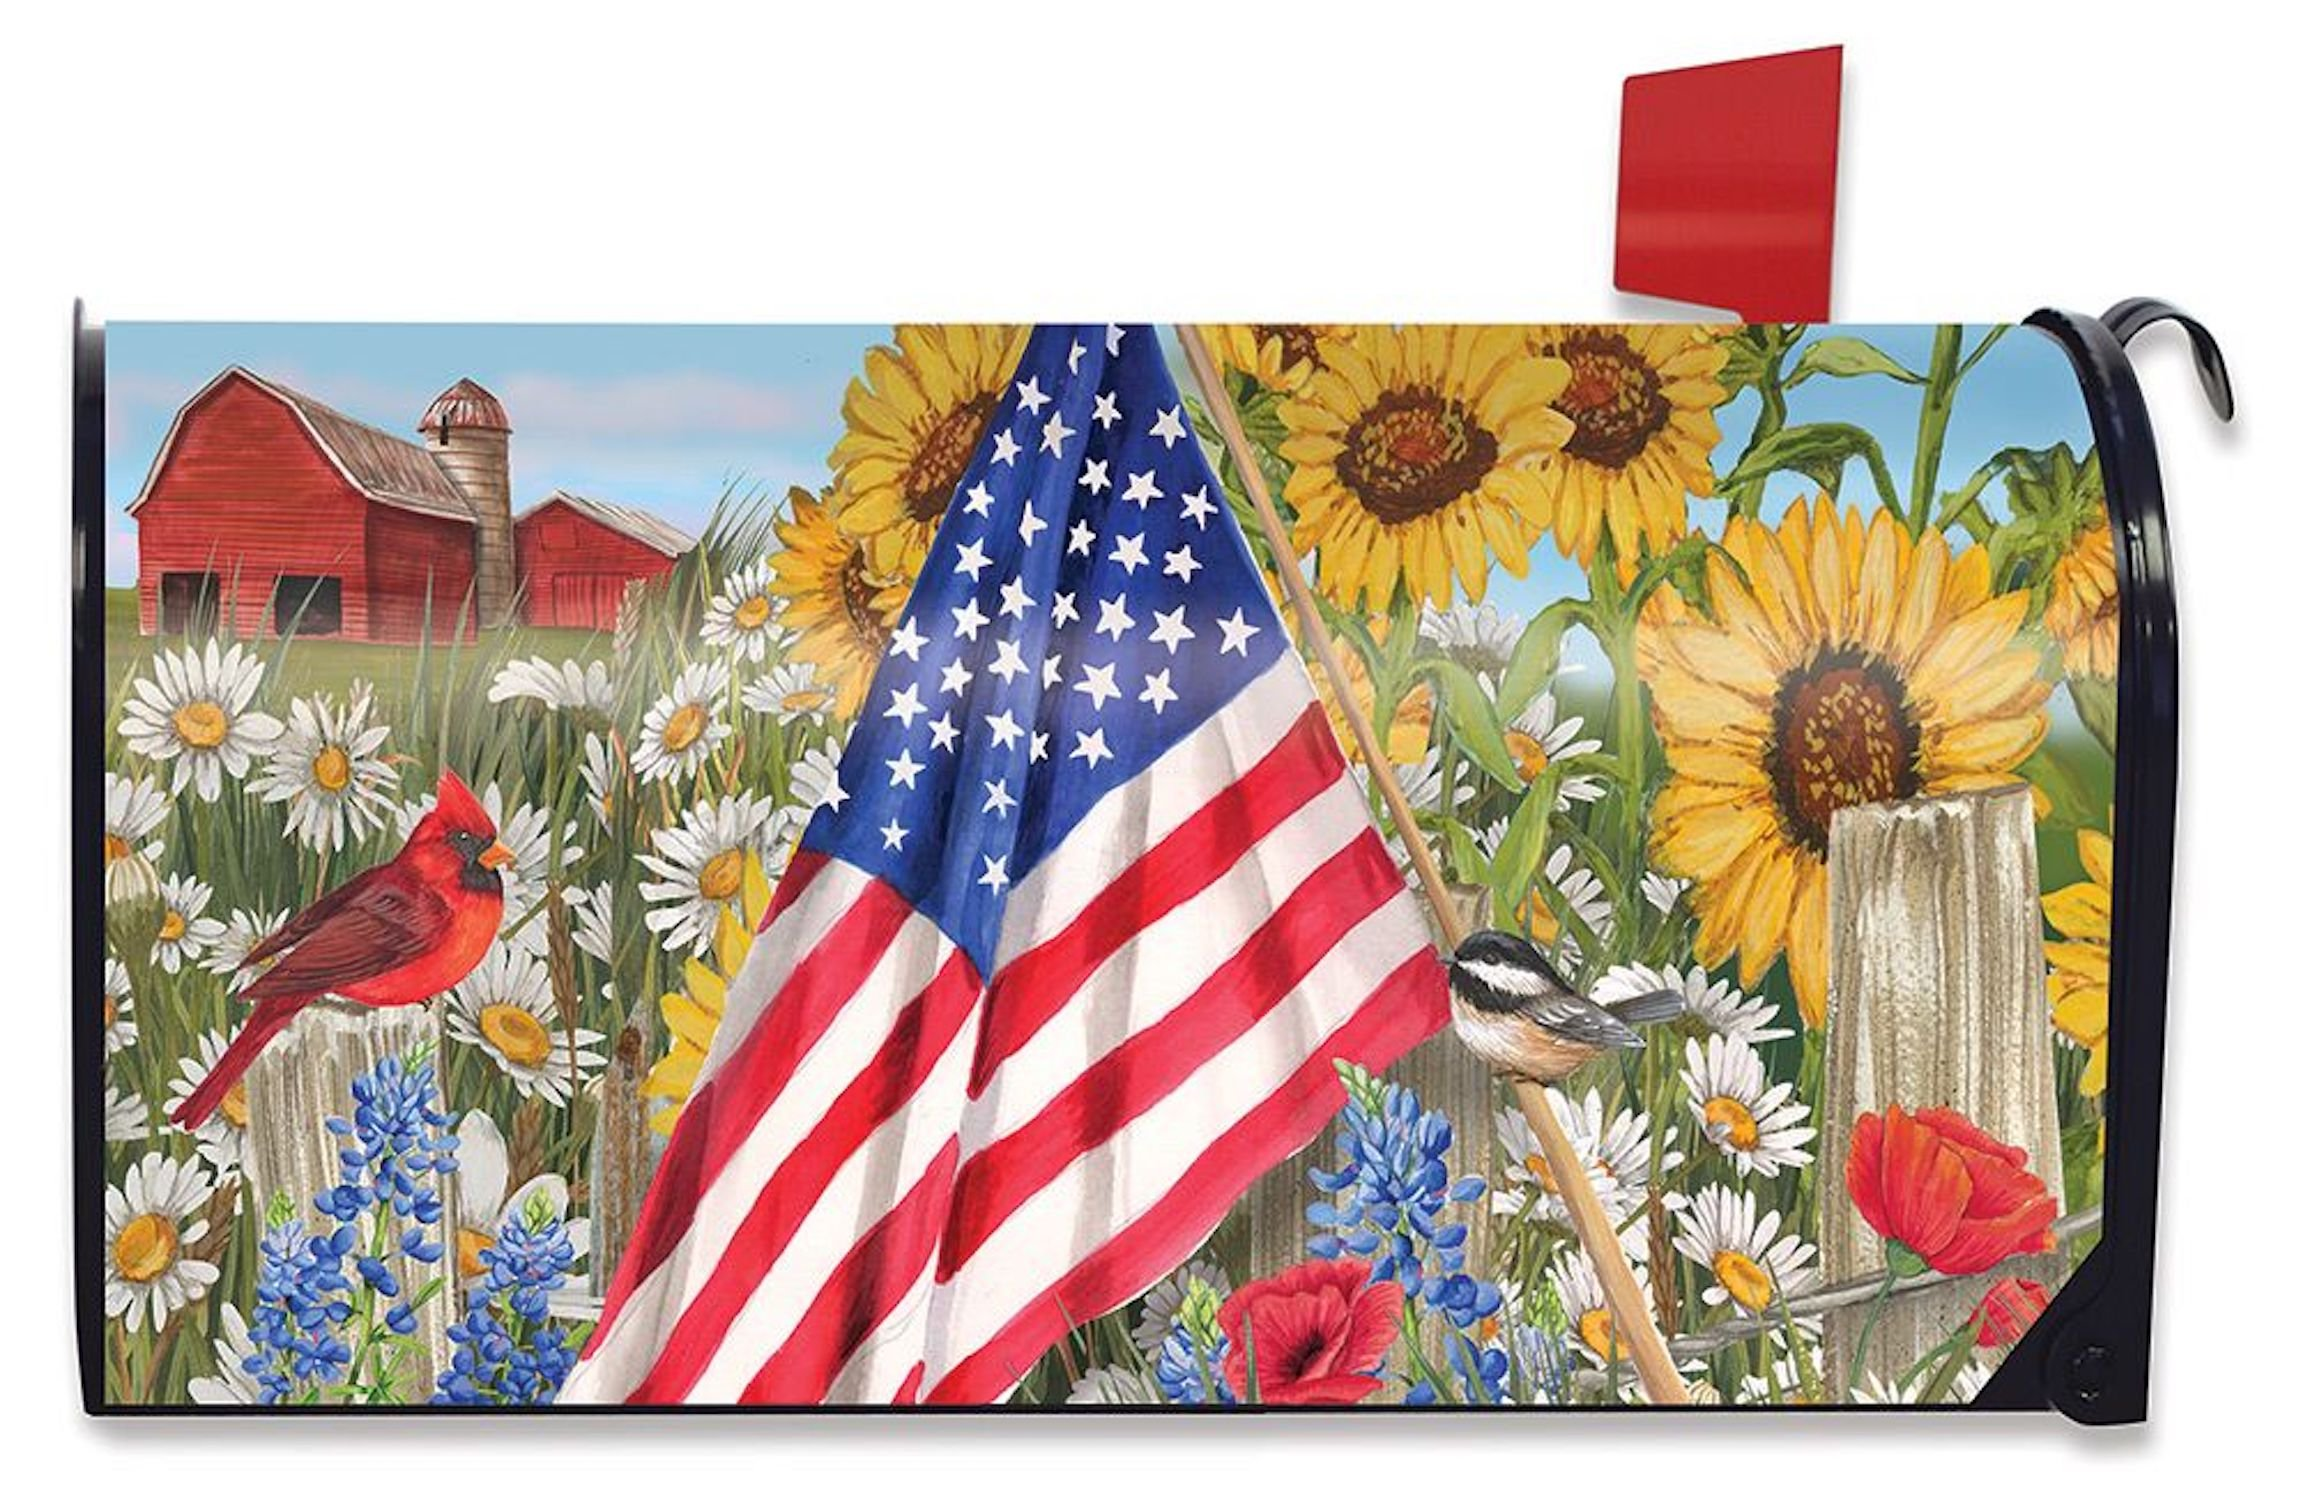 America the Beautiful Summer Large Mailbox Cover Patriotic Primitive Oversized